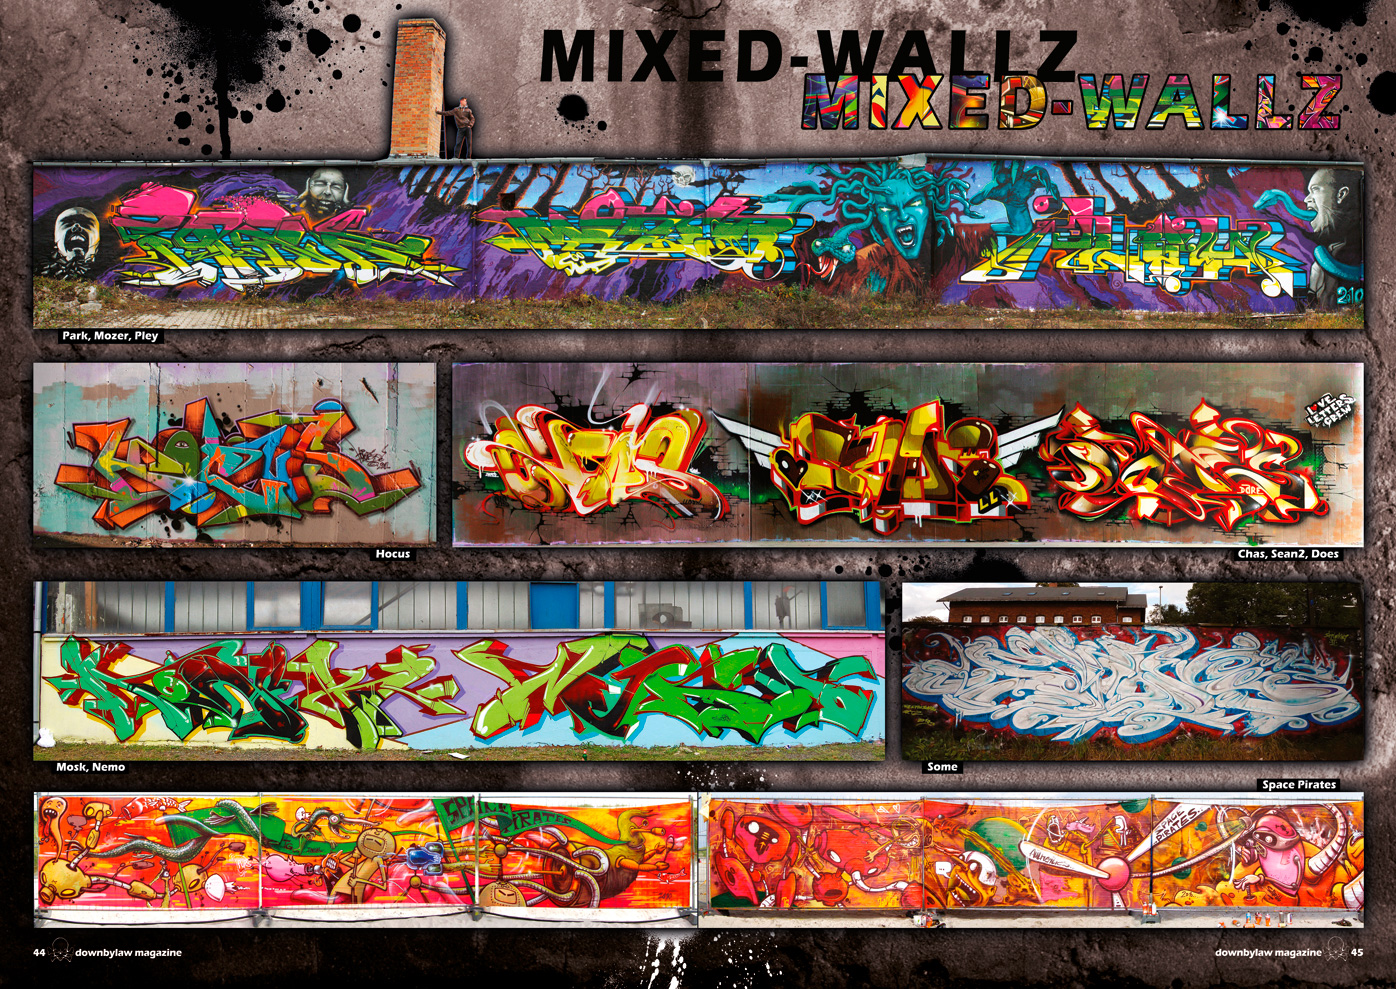 downbylaw_magazine_8_walls_graffiti